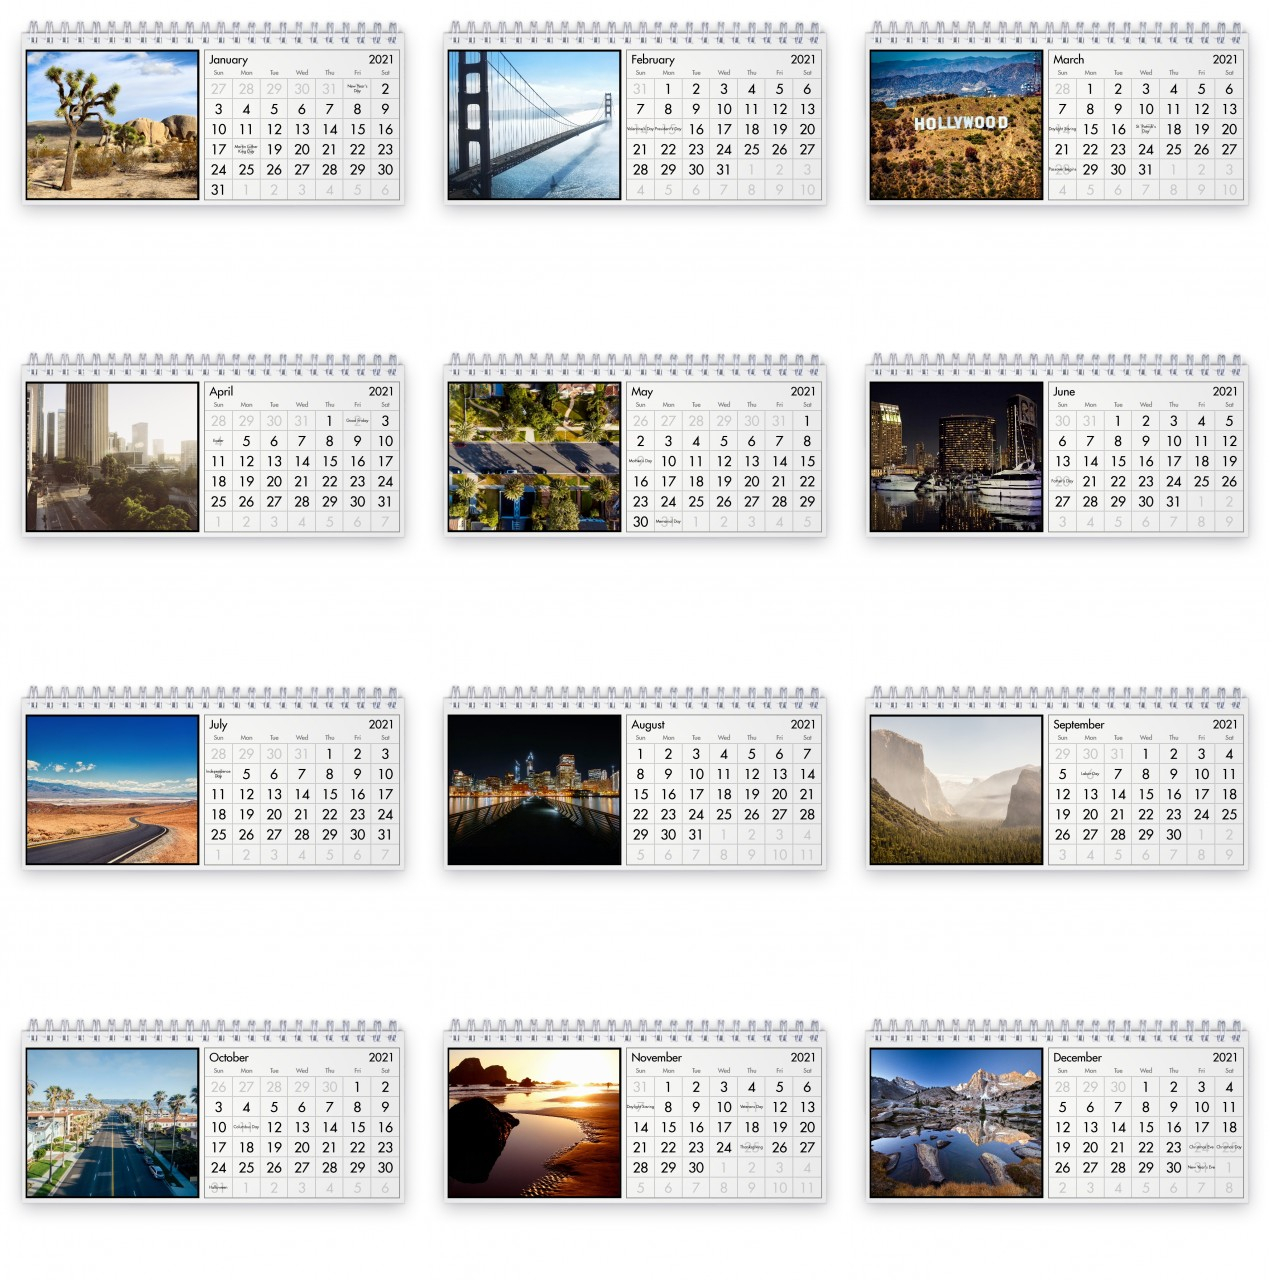 California 2021 Desk Calendar pertaining to National Food Calendar 2021